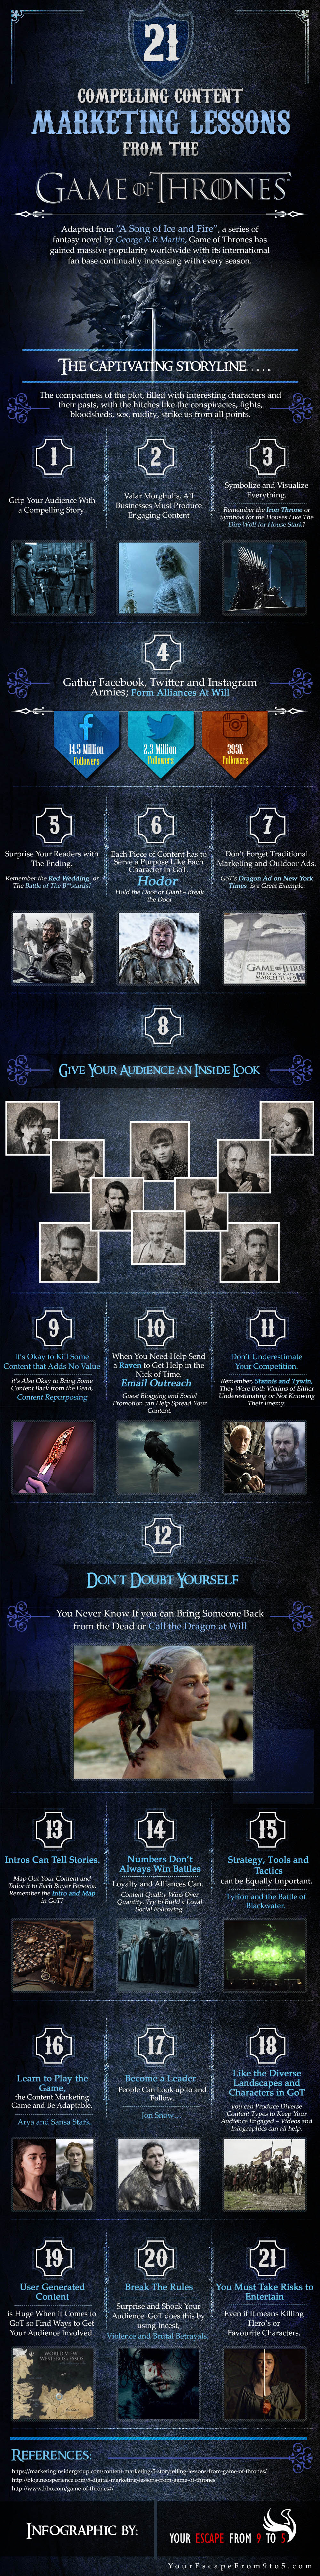 21 Compelling Content Marketing Lessons from The Game of Thrones [Infographic]